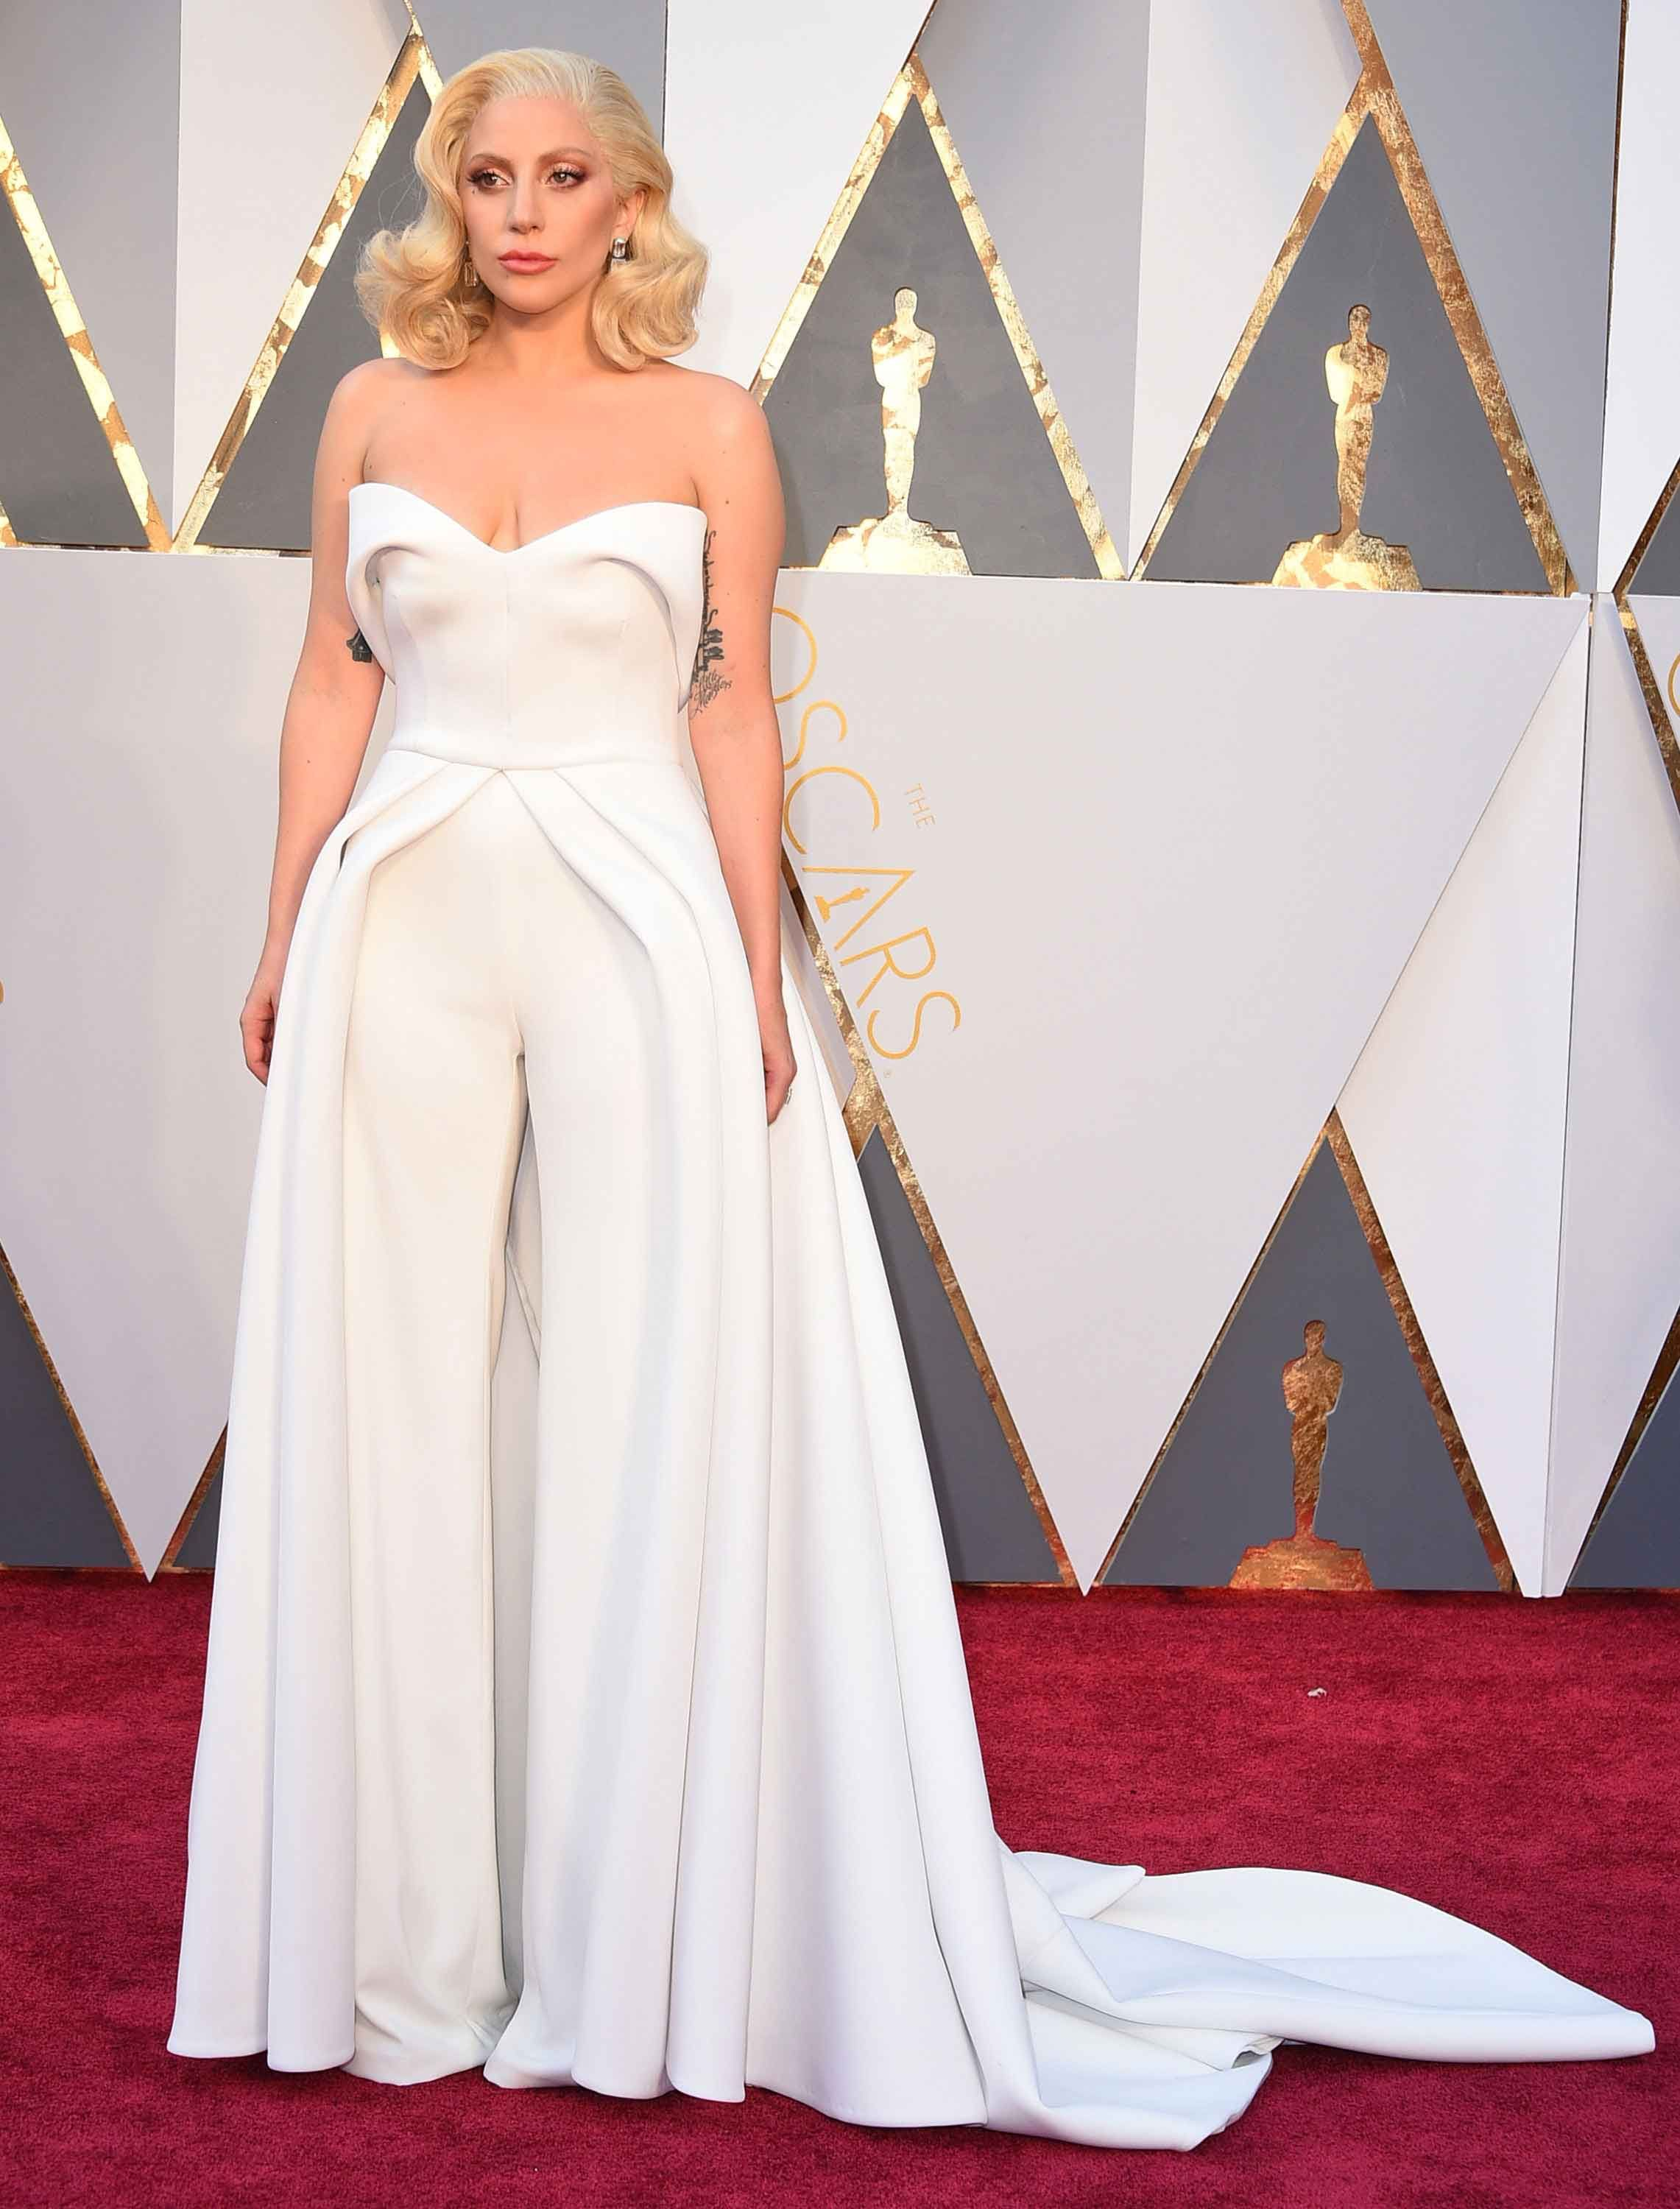 50 Best Oscars Dresses of All Time - Most Iconic Oscar Red Carpet Gowns